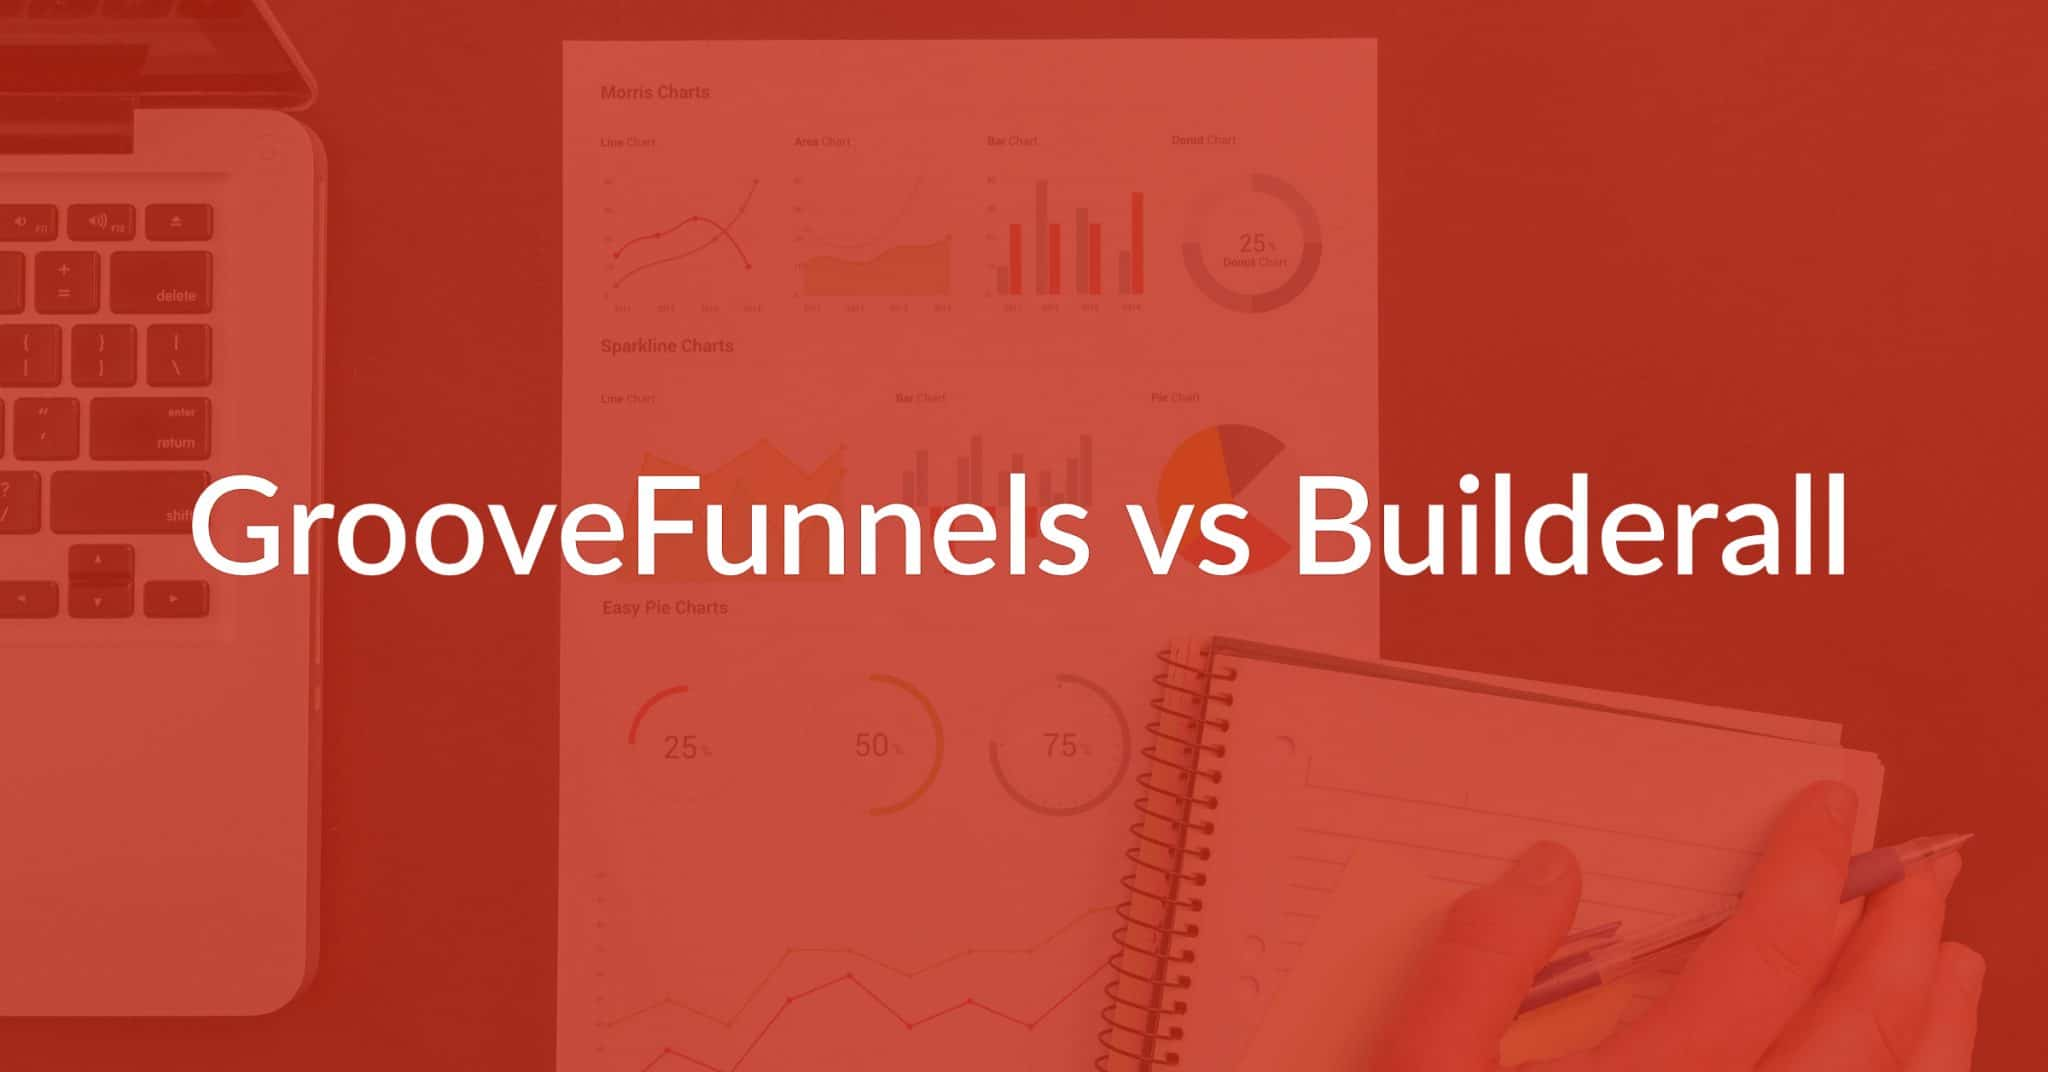 GrooveFunnels vs Builderall: Which One Should You Go With?